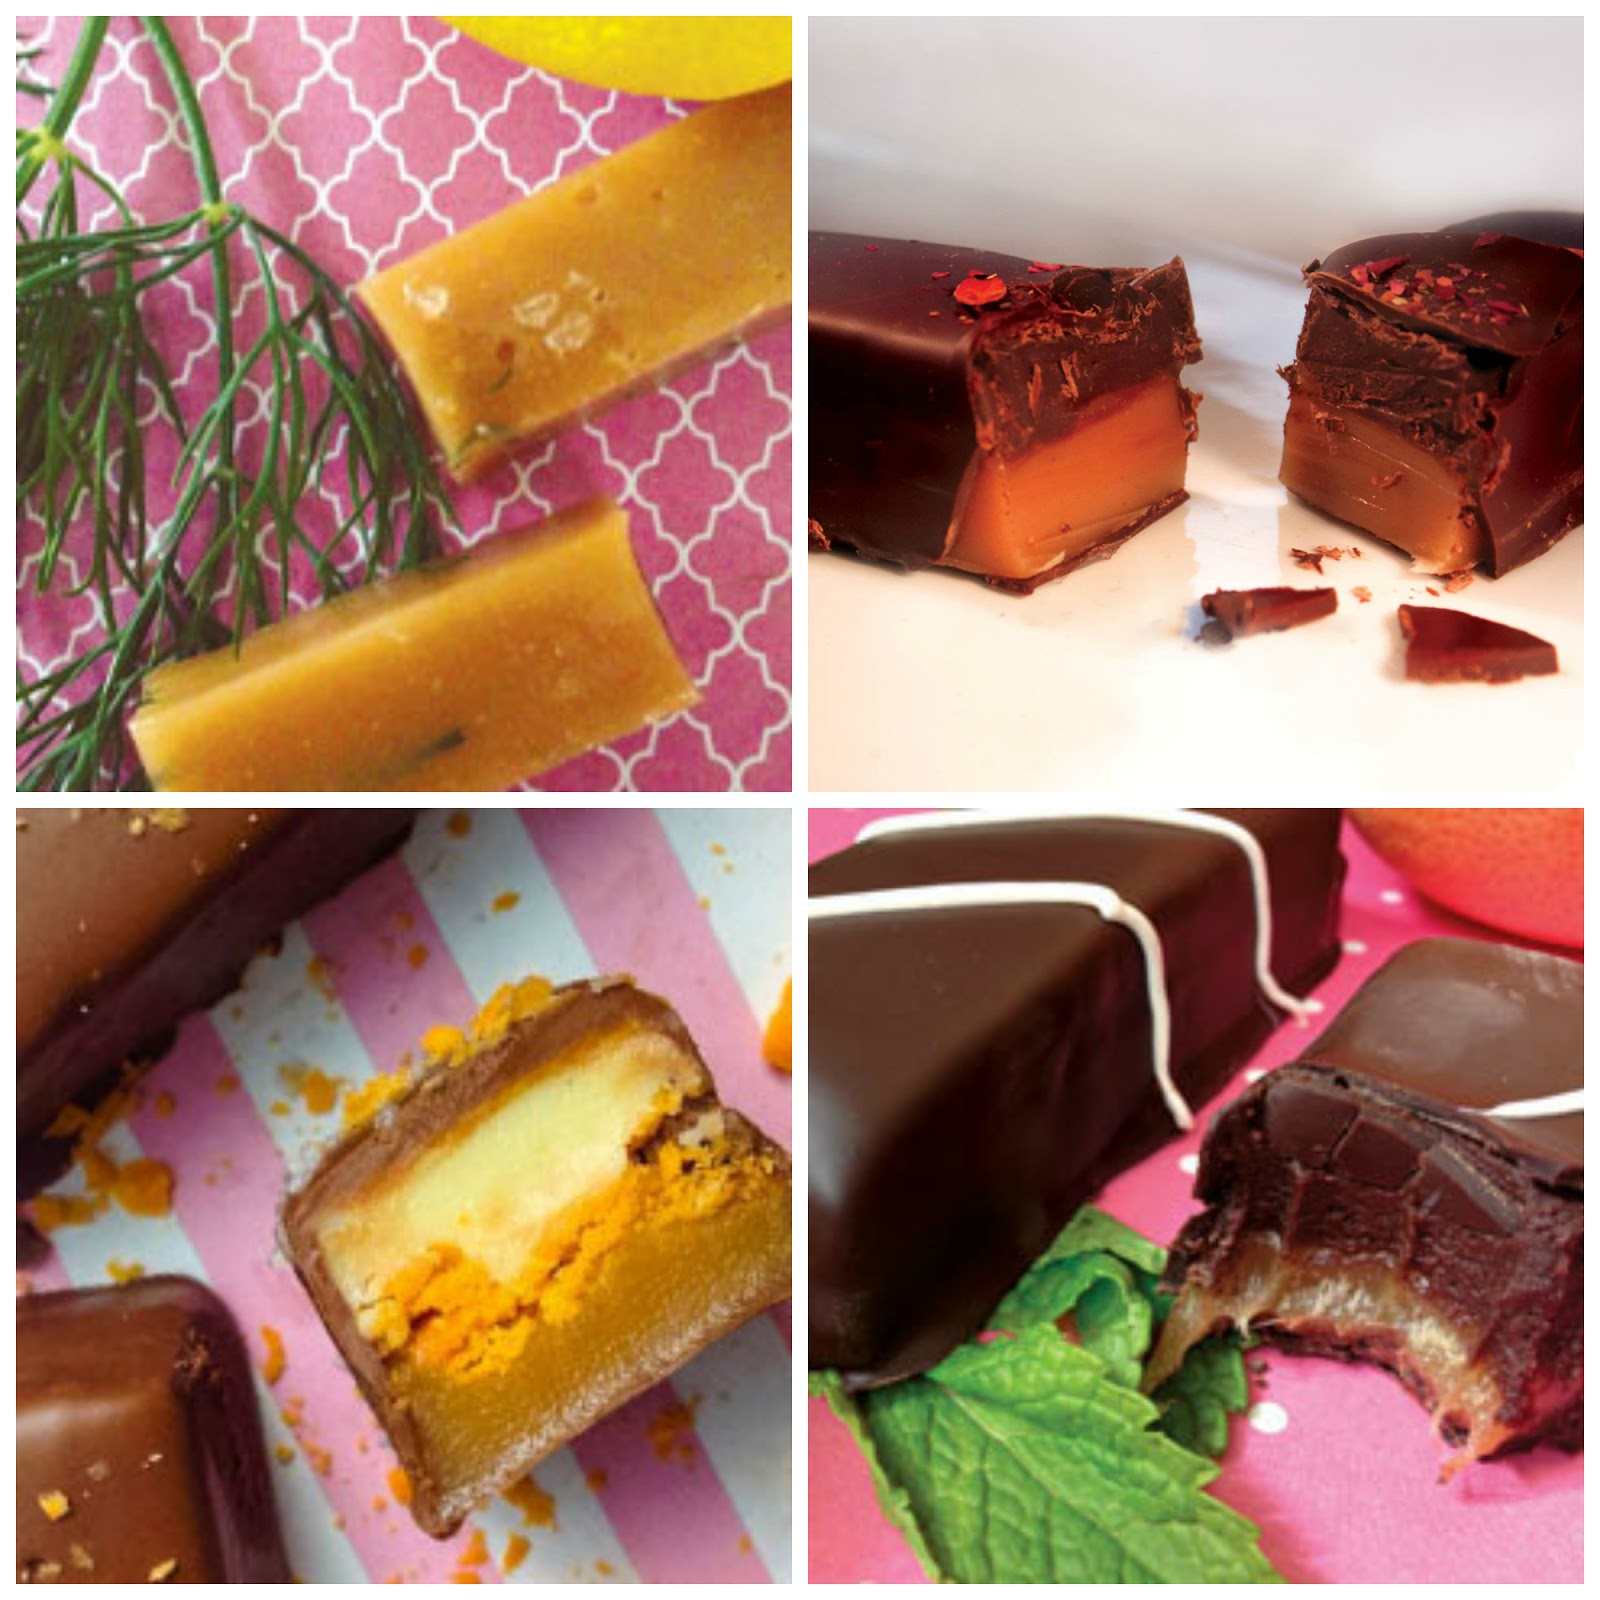 Celebrate Spring with Herb Garden Desserts by Chocolate Twist | all dressed up with nothing to drink...